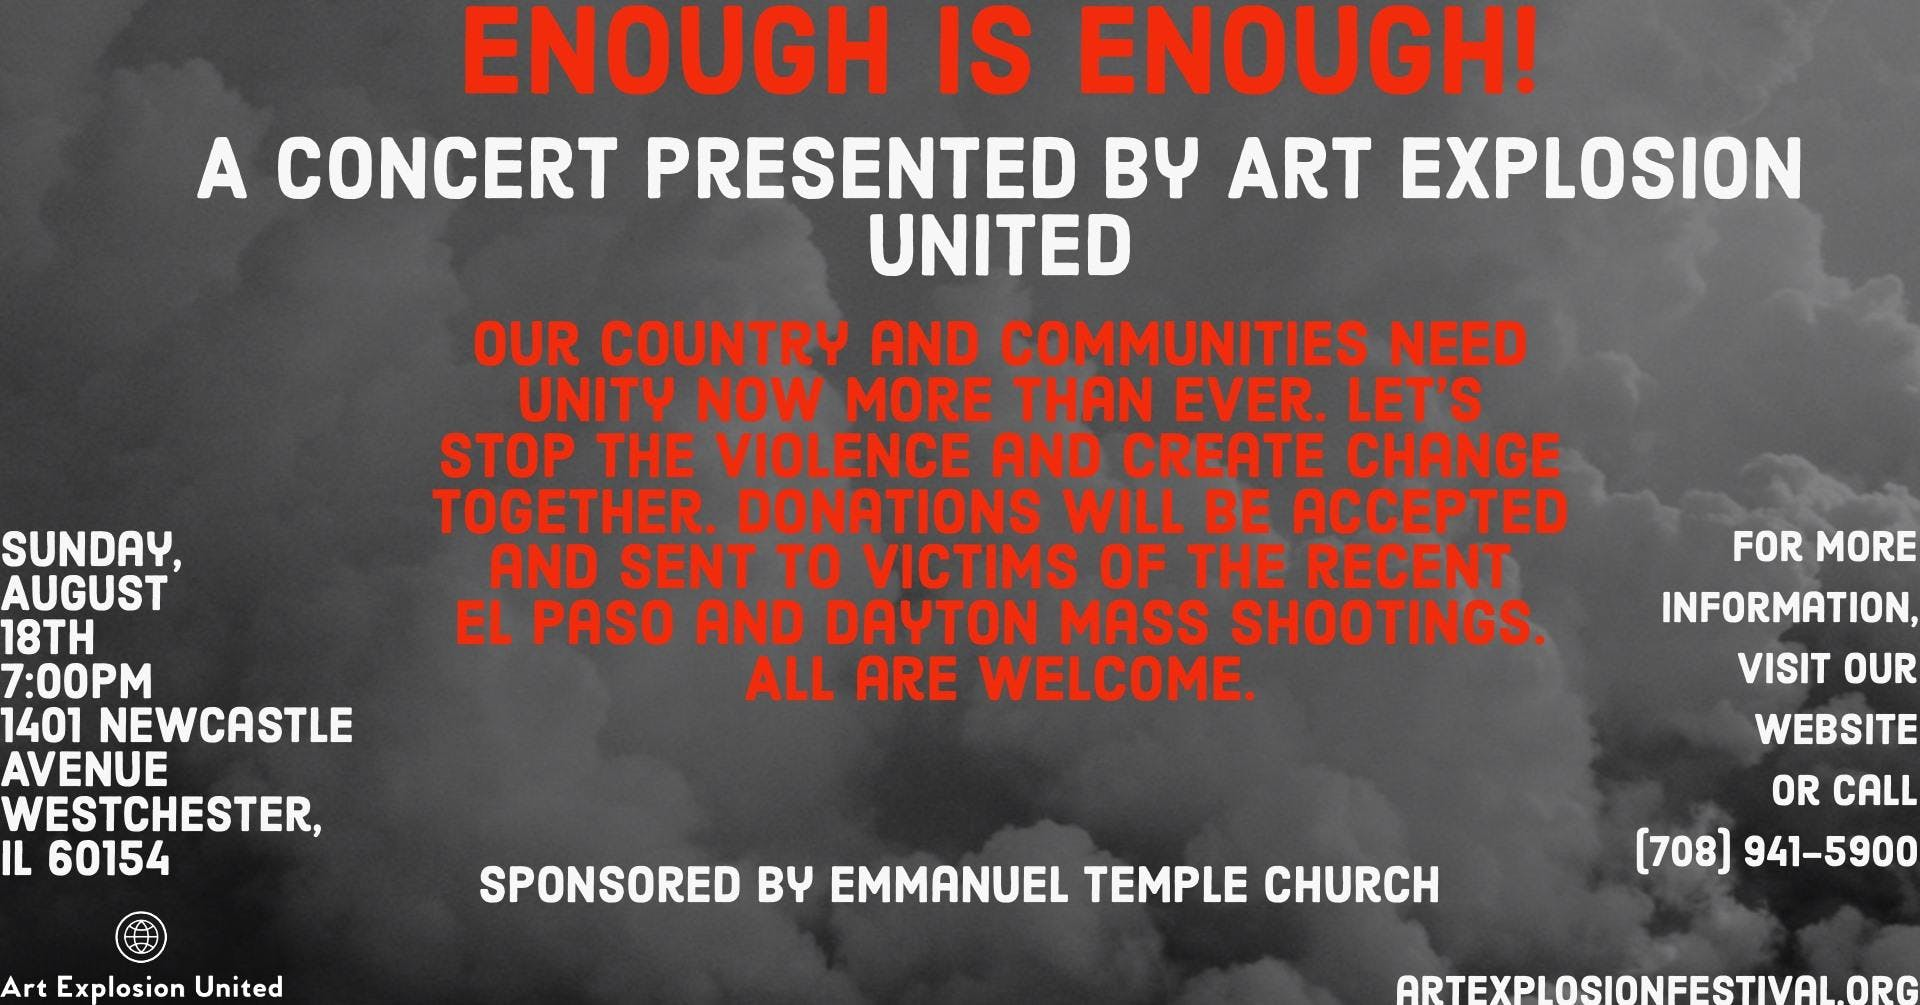 Enough Is Enough! A Concert Presented by Art Explosion United